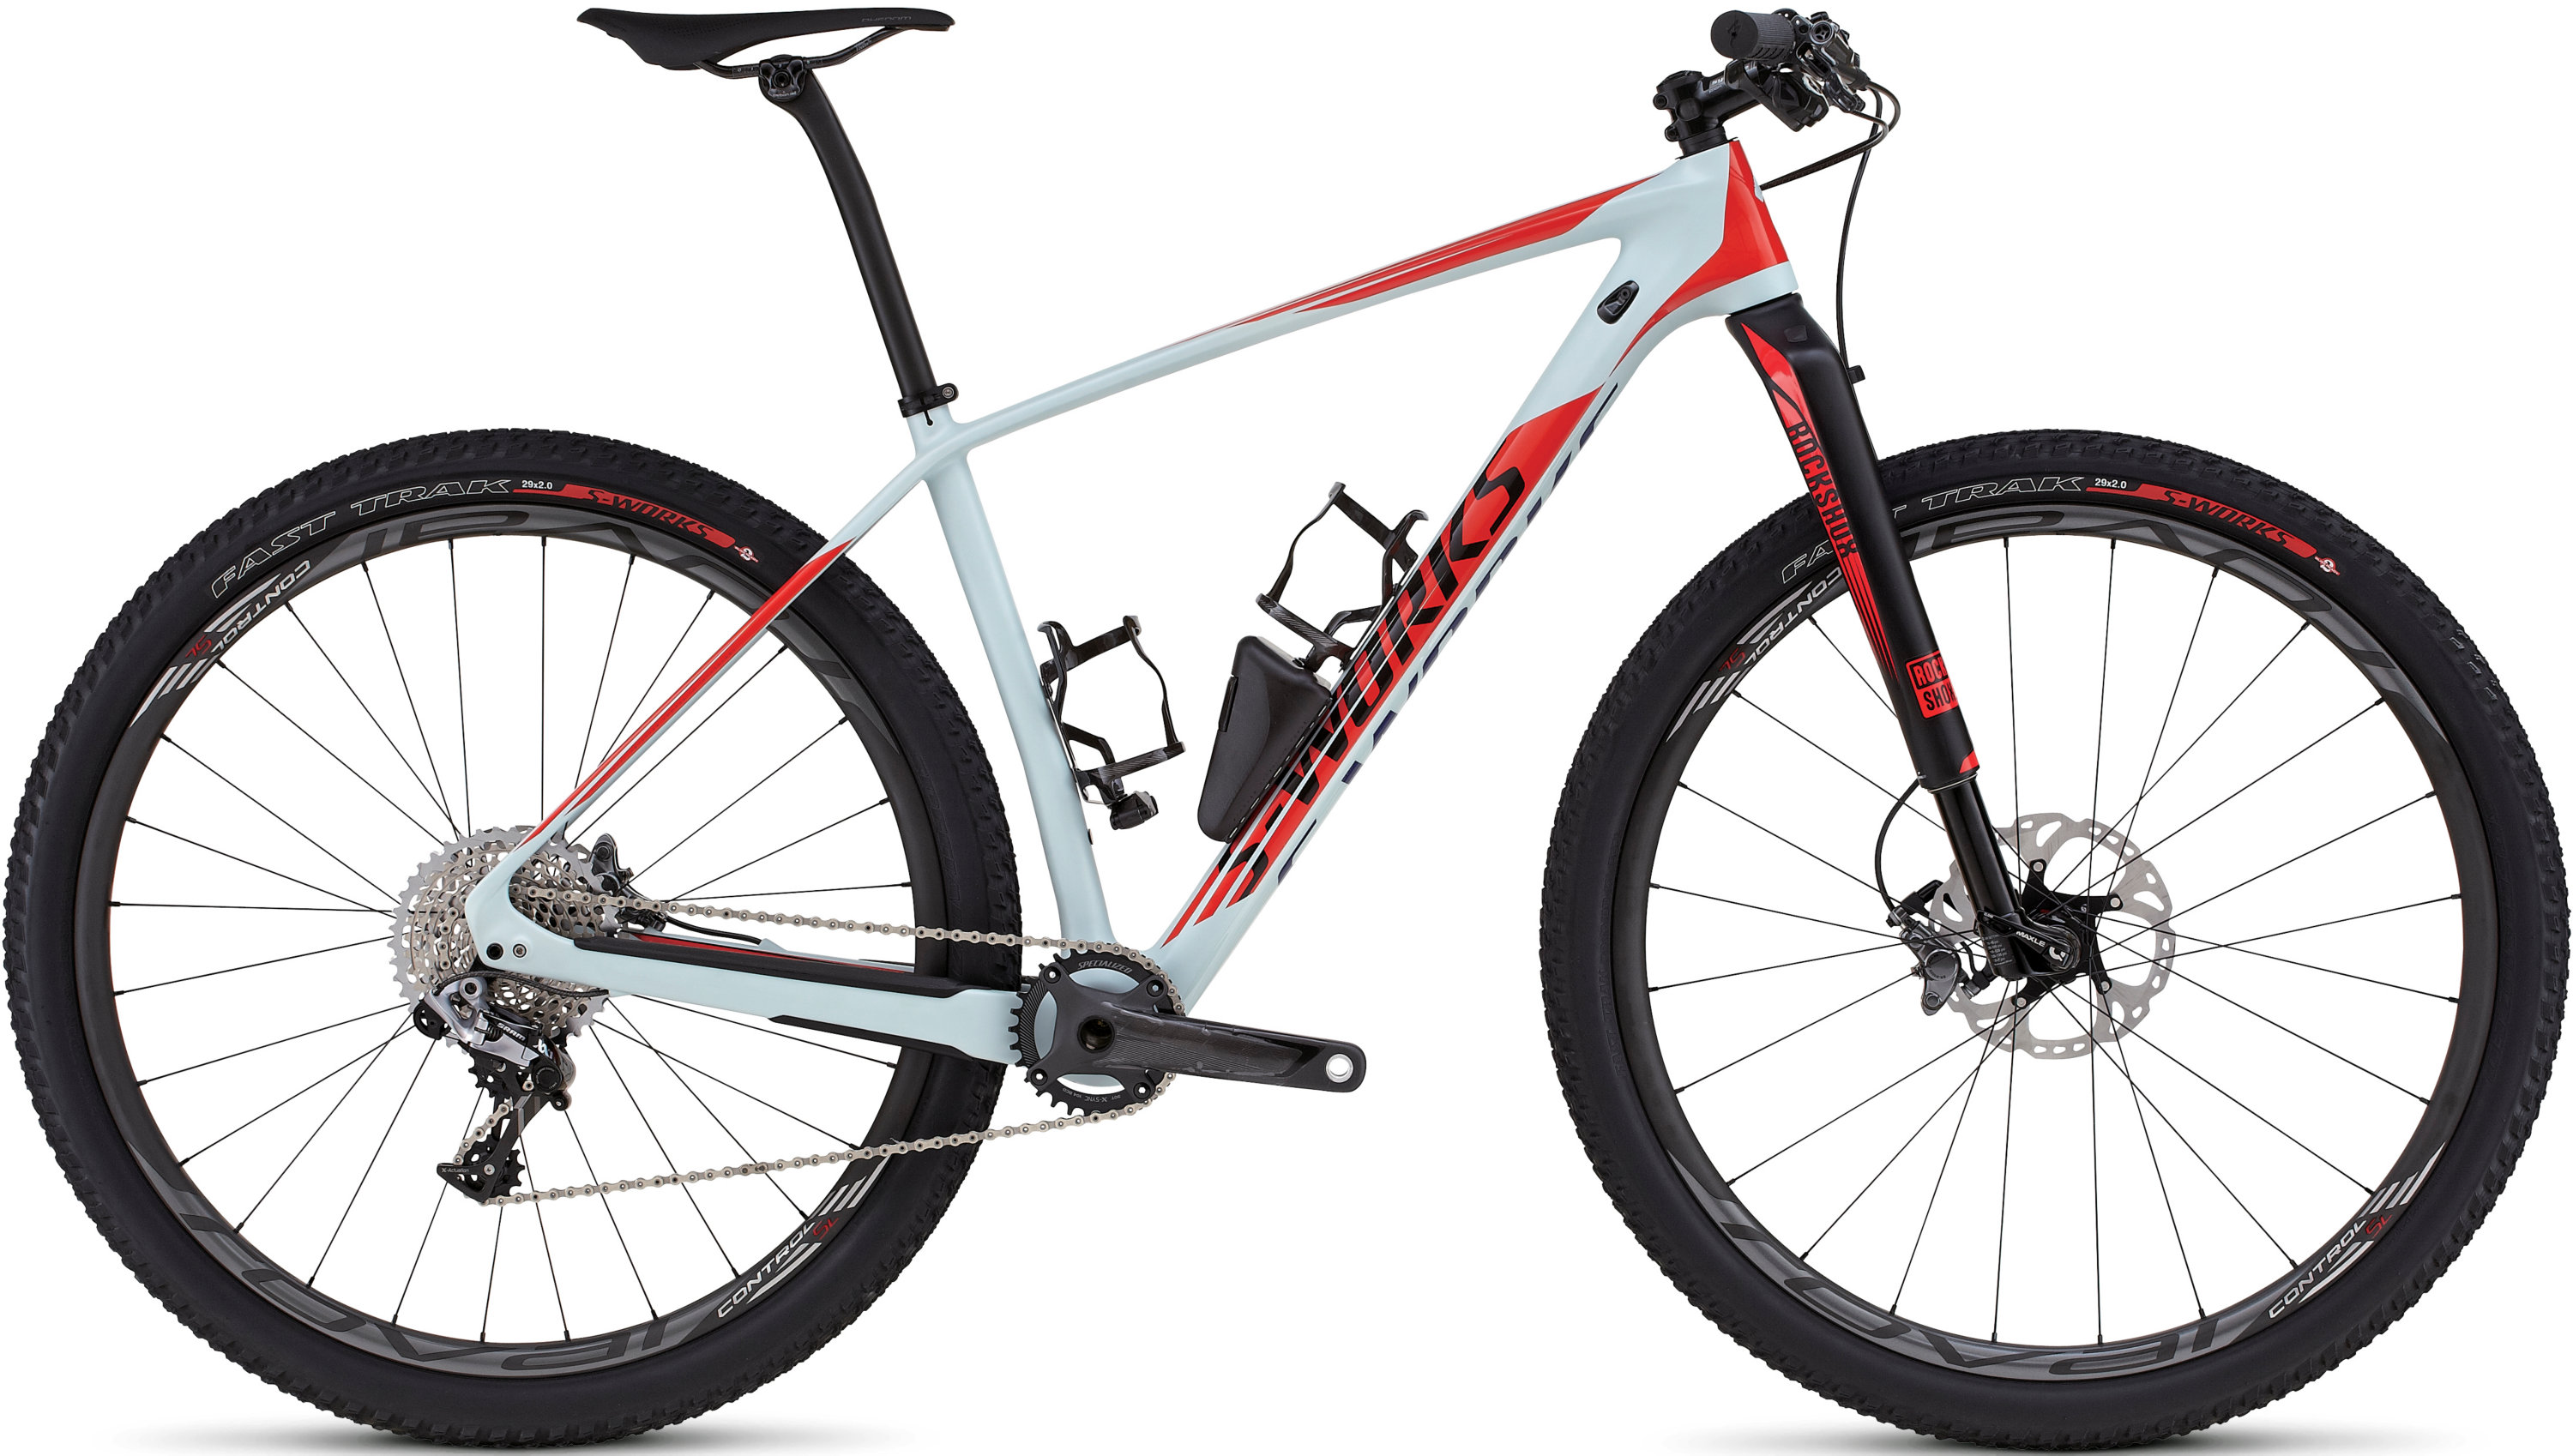 SPECIALIZED SW SJ HT CARBON WC 29 BBYBLU/RKTRED/BLK S - schneider-sports